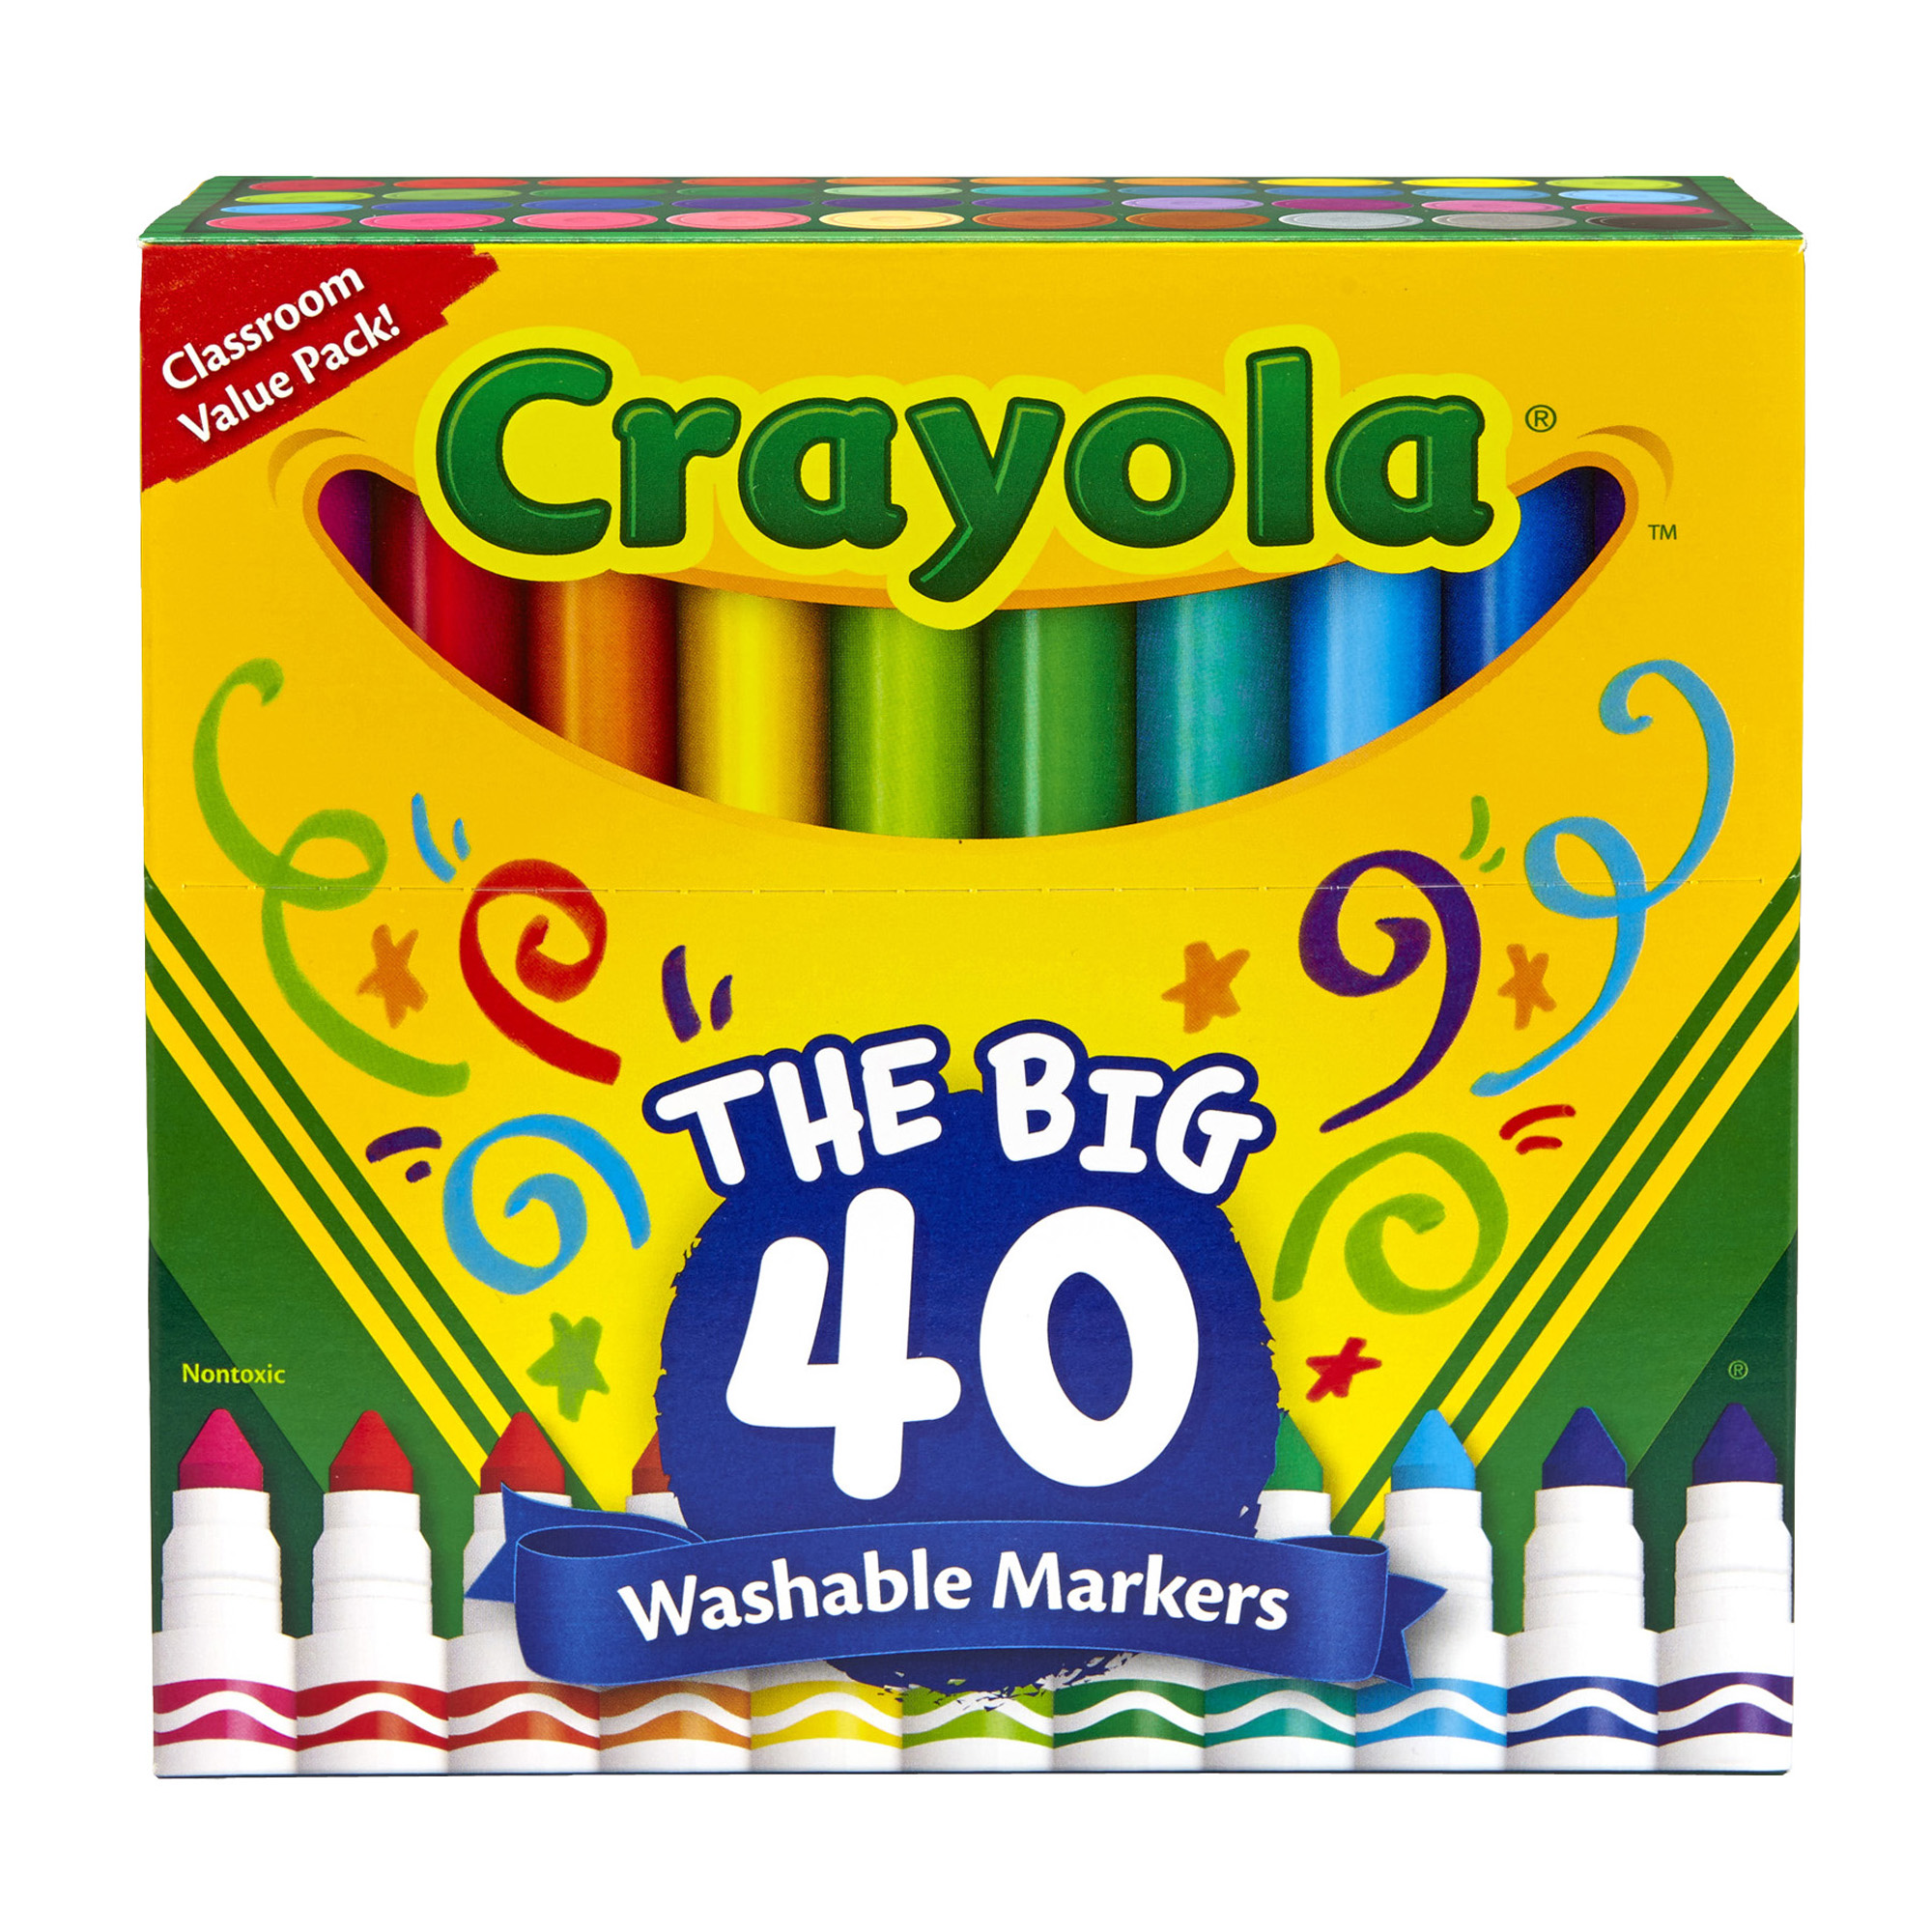 Crayola® Washable Markers, Broad Line, Assorted Colors, Pack of 40